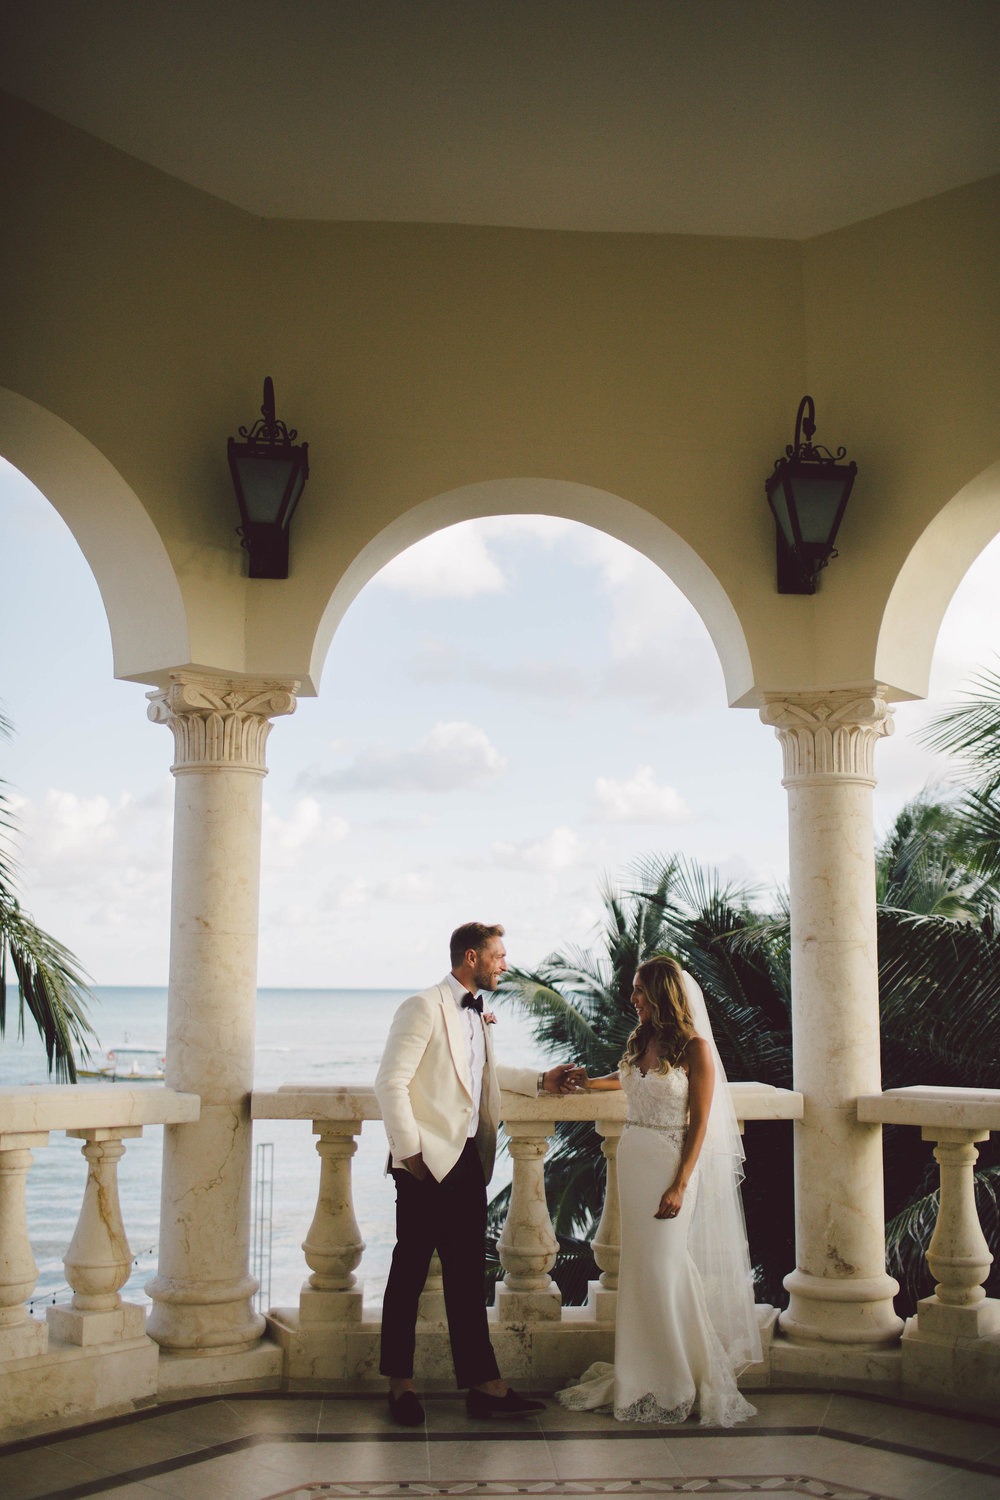 mexico_wedding_cancun_villa_la_joya_evangeline_lane_091.jpg